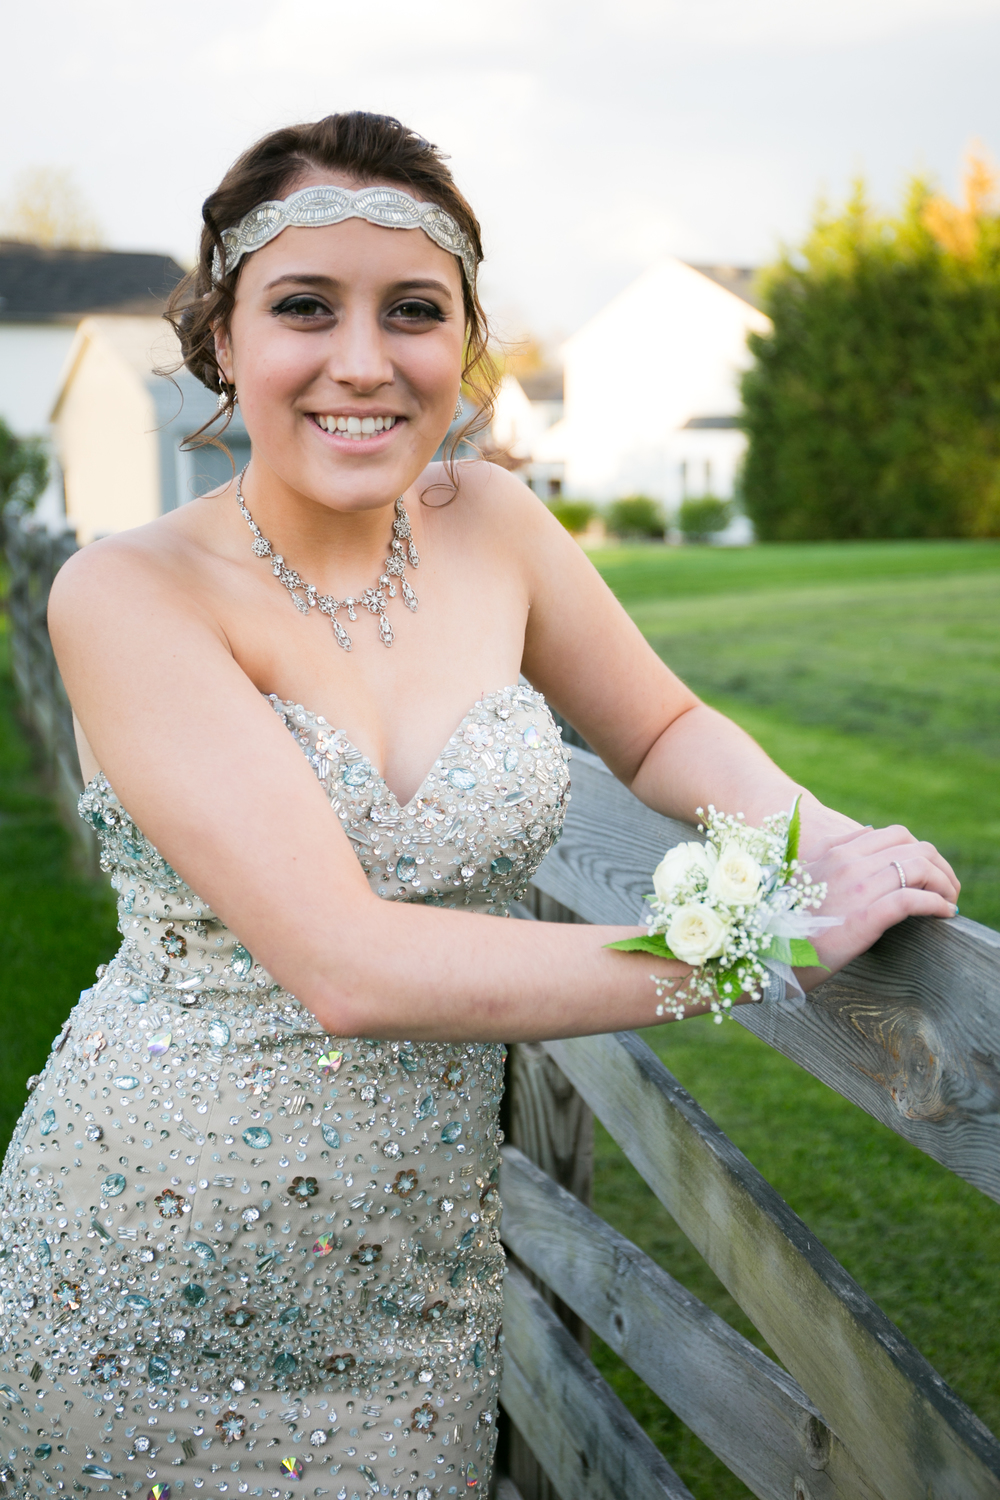 Mount-De-Sales-Pre-Prom-May-2014-81.jpg